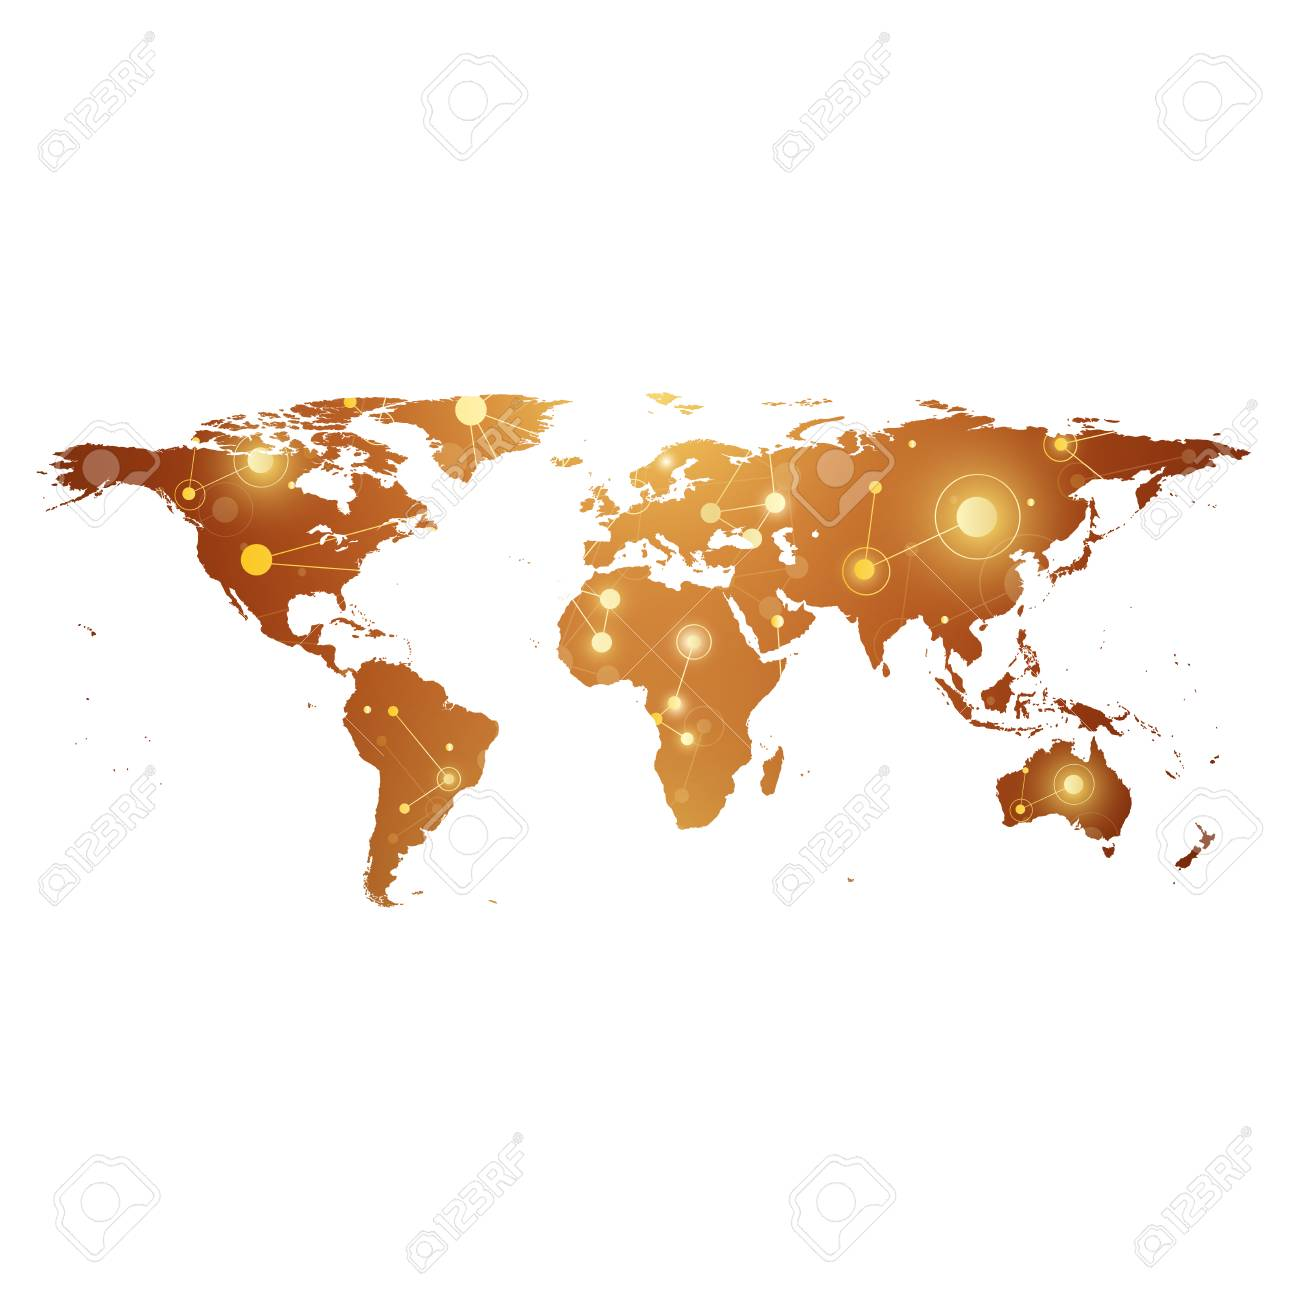 Golden political world map with global technology networking golden political world map with global technology networking concept digital data visualization scientific cybernetic gumiabroncs Choice Image